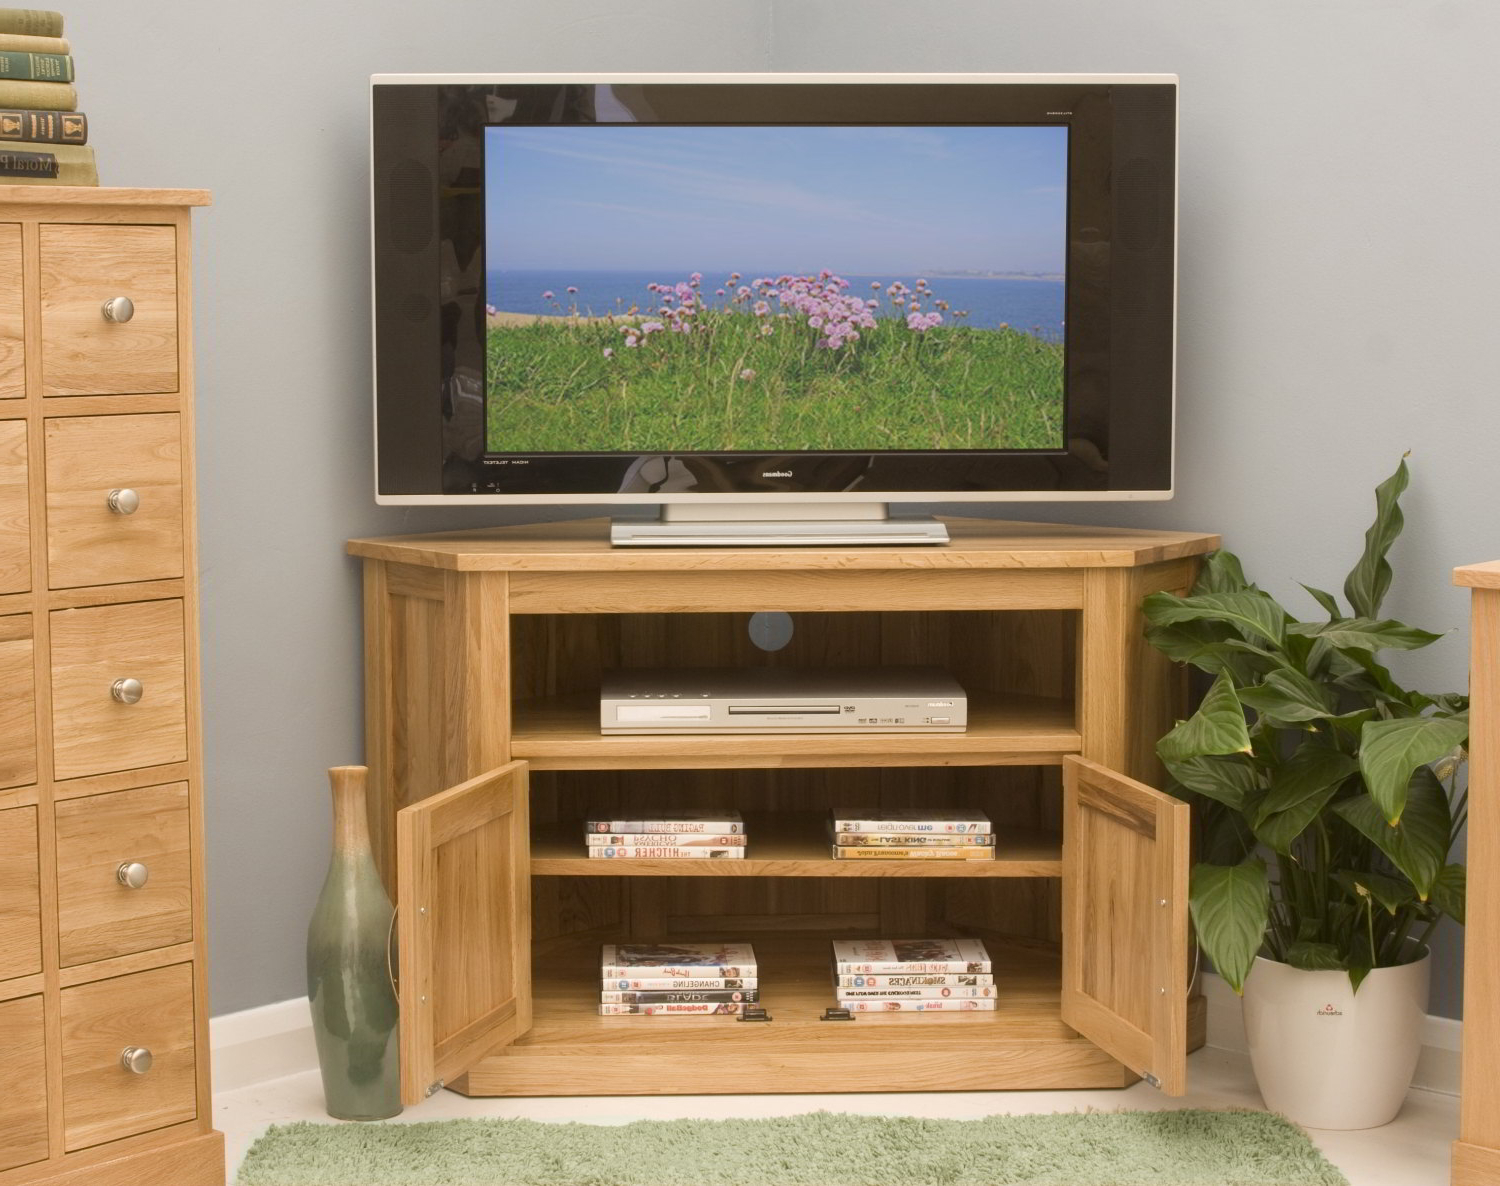 Conran Solid Oak Living Room Furniture Corner Television Cabinet Intended For Widely Used Solid Oak Corner Tv Cabinets (View 19 of 20)